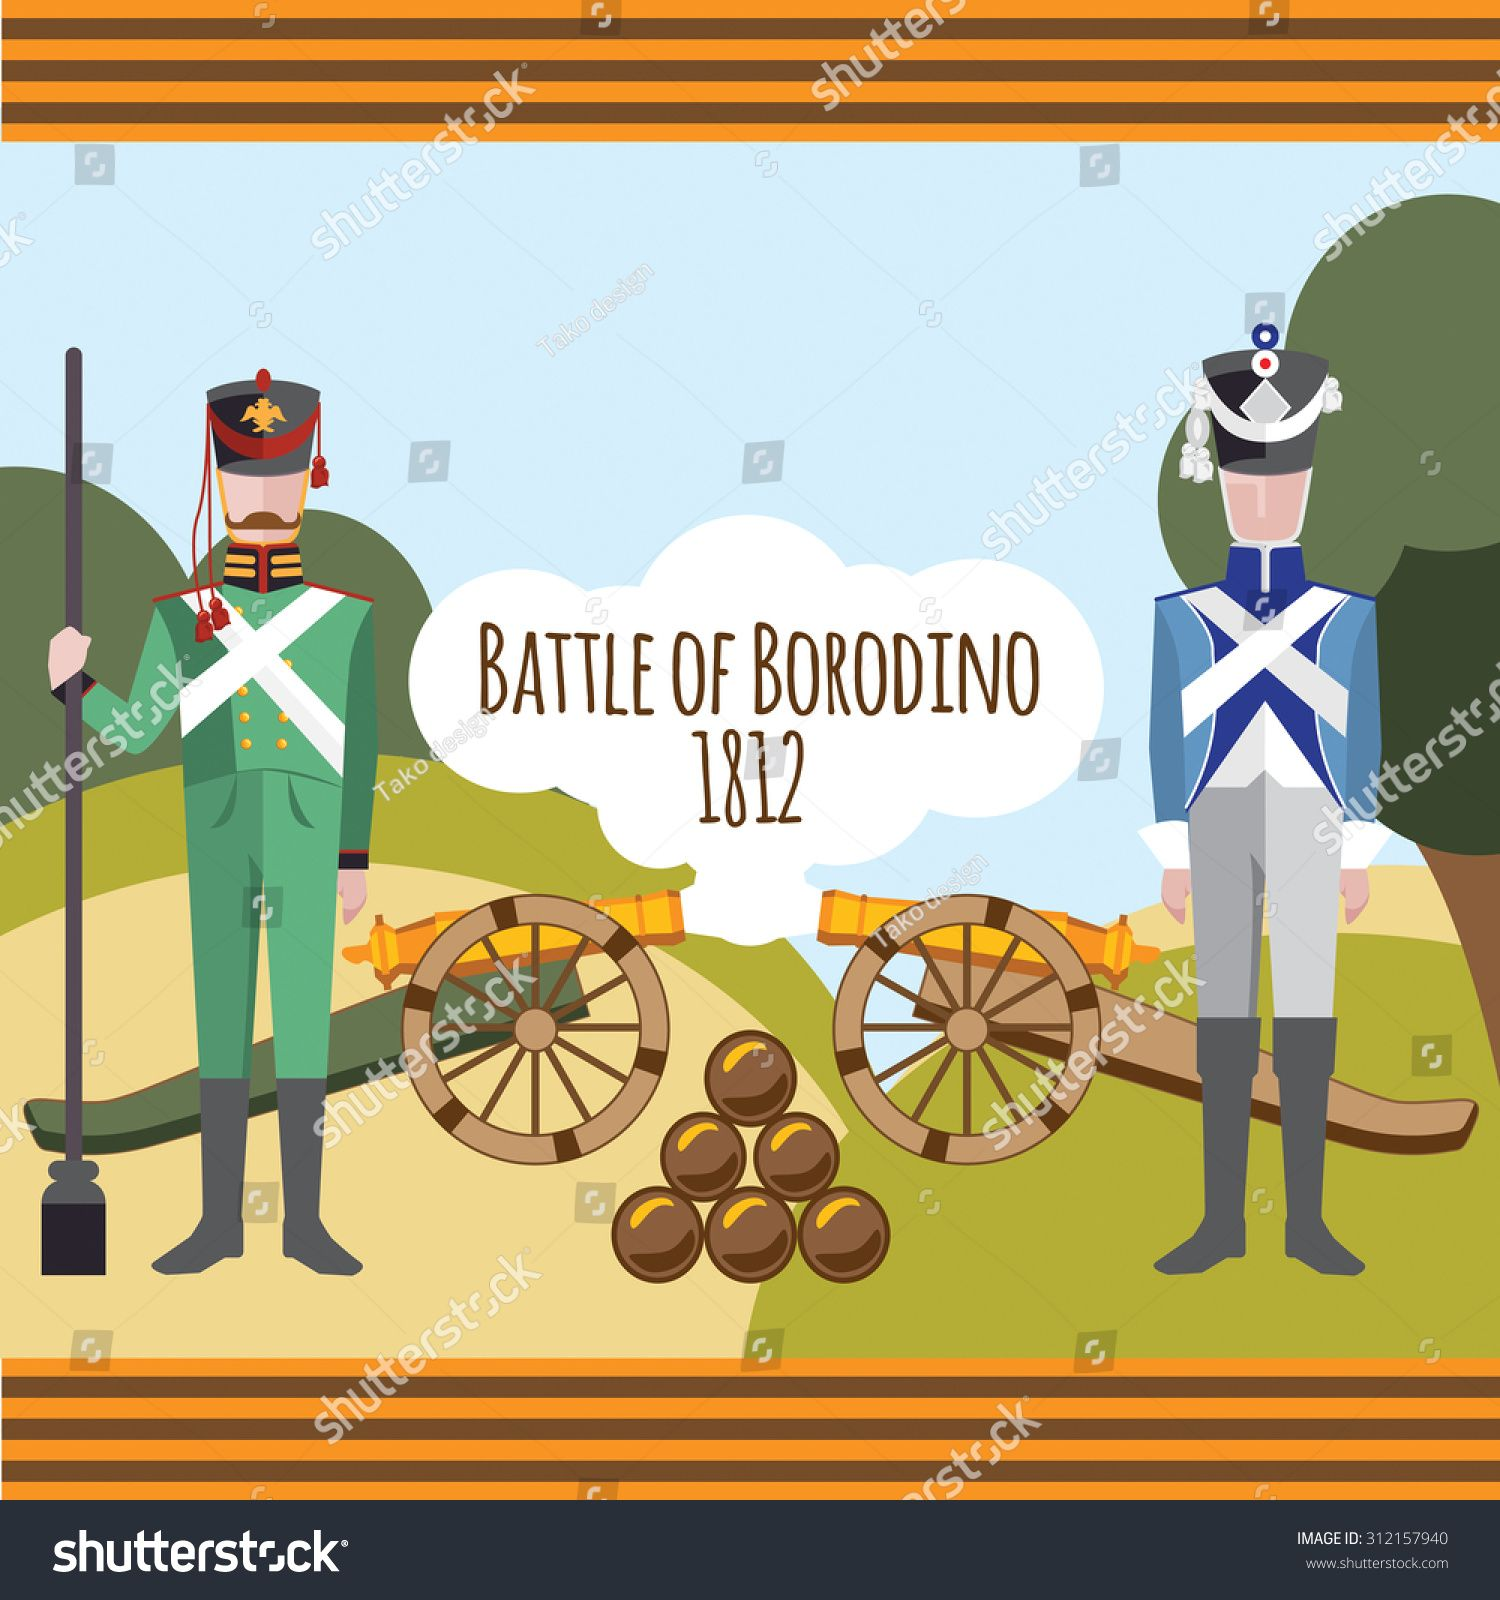 image royalty free download Vector cannon traditional. Battle of borodino russian